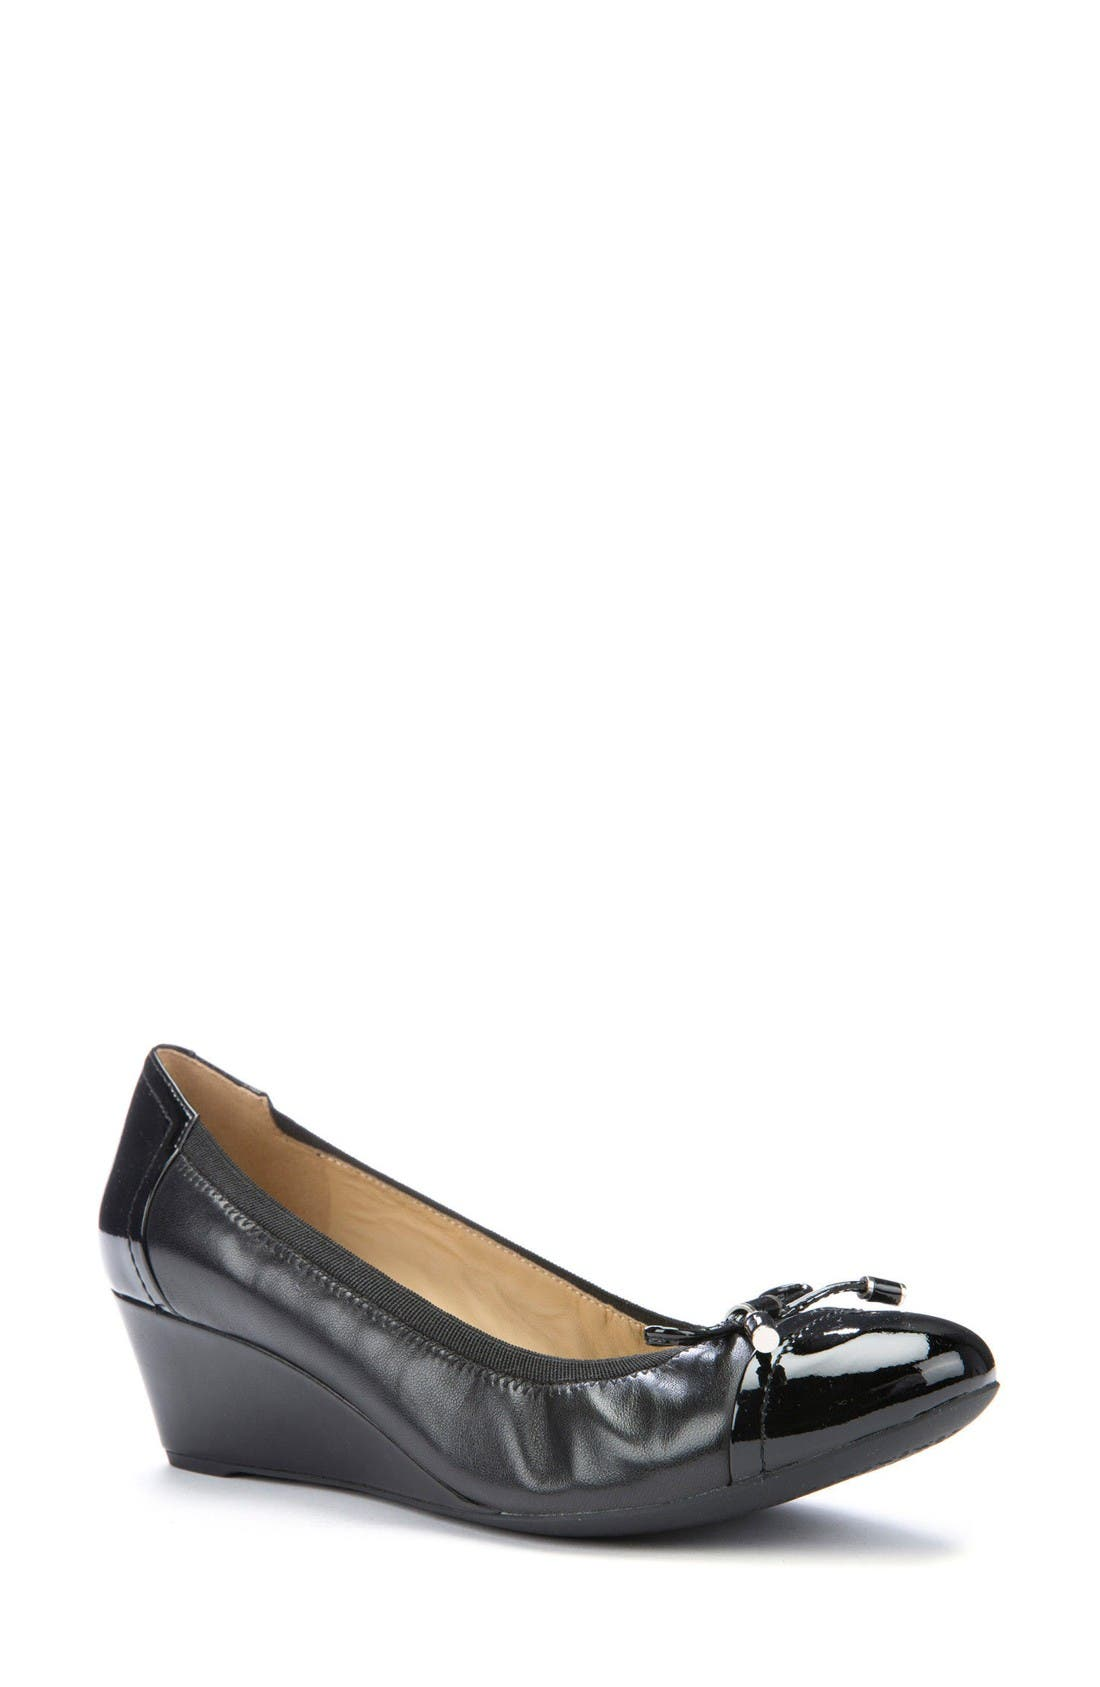 Alternate Image 1 Selected - Geox Floralie 17 Wedge Pump (Women)